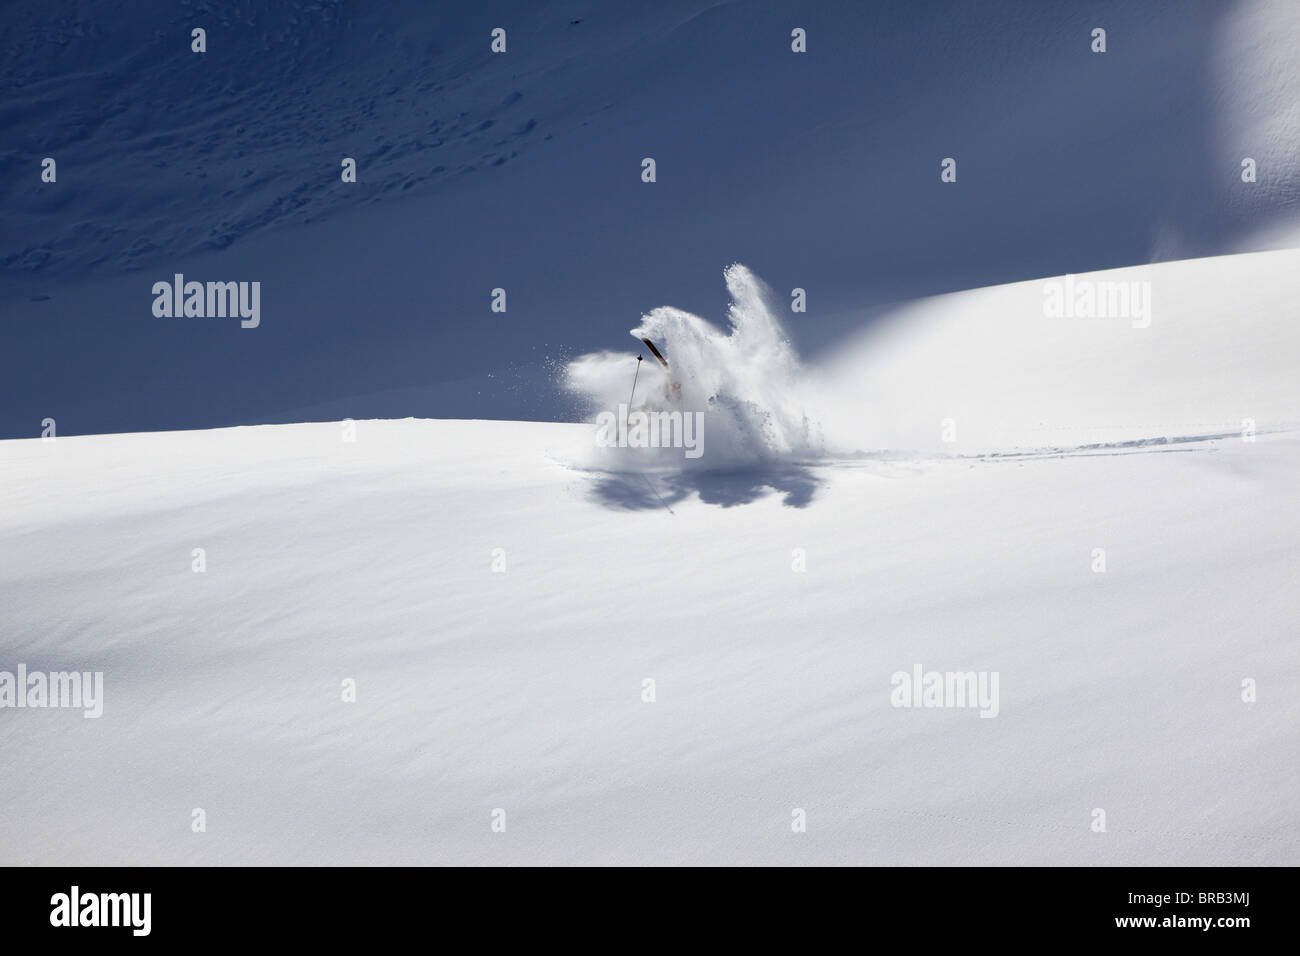 A skier falls after a jump in deep powder on a Val Gardena off piste slope - Stock Image